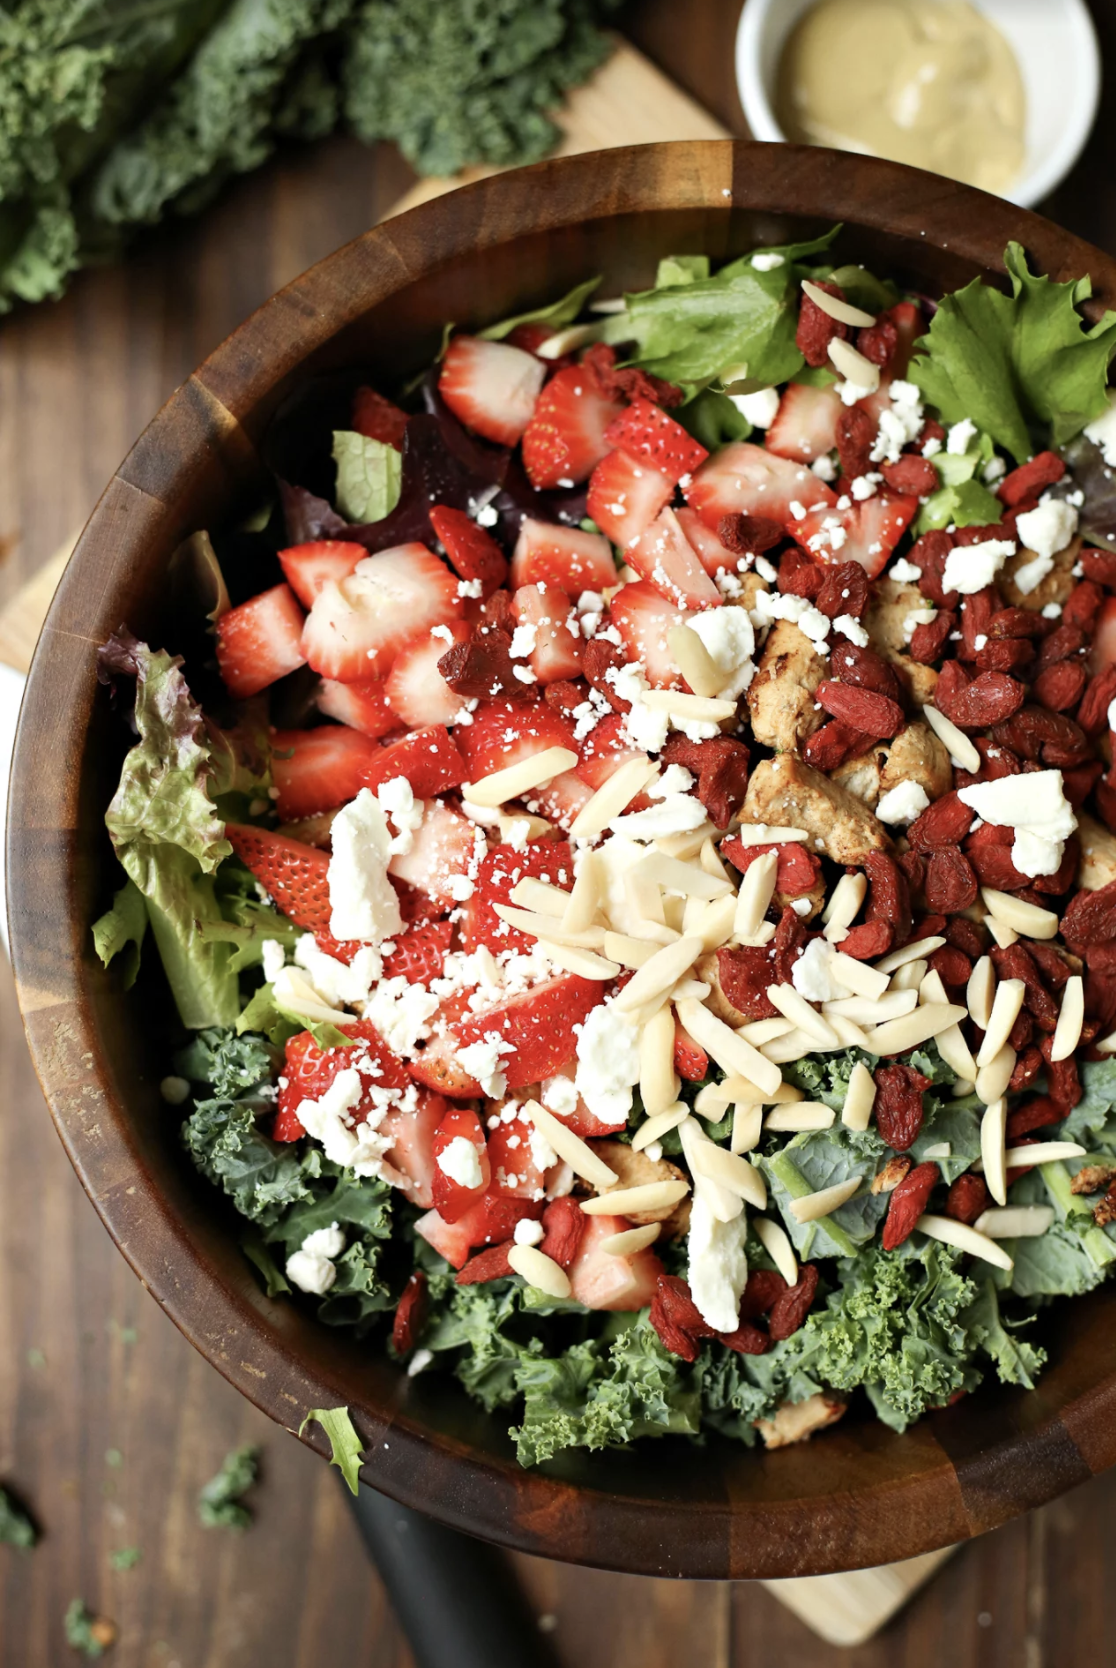 Delicious and super healthy recipe for Spring Salad with Strawberry Balsamic Dressing at www.hipmamasplace.com!